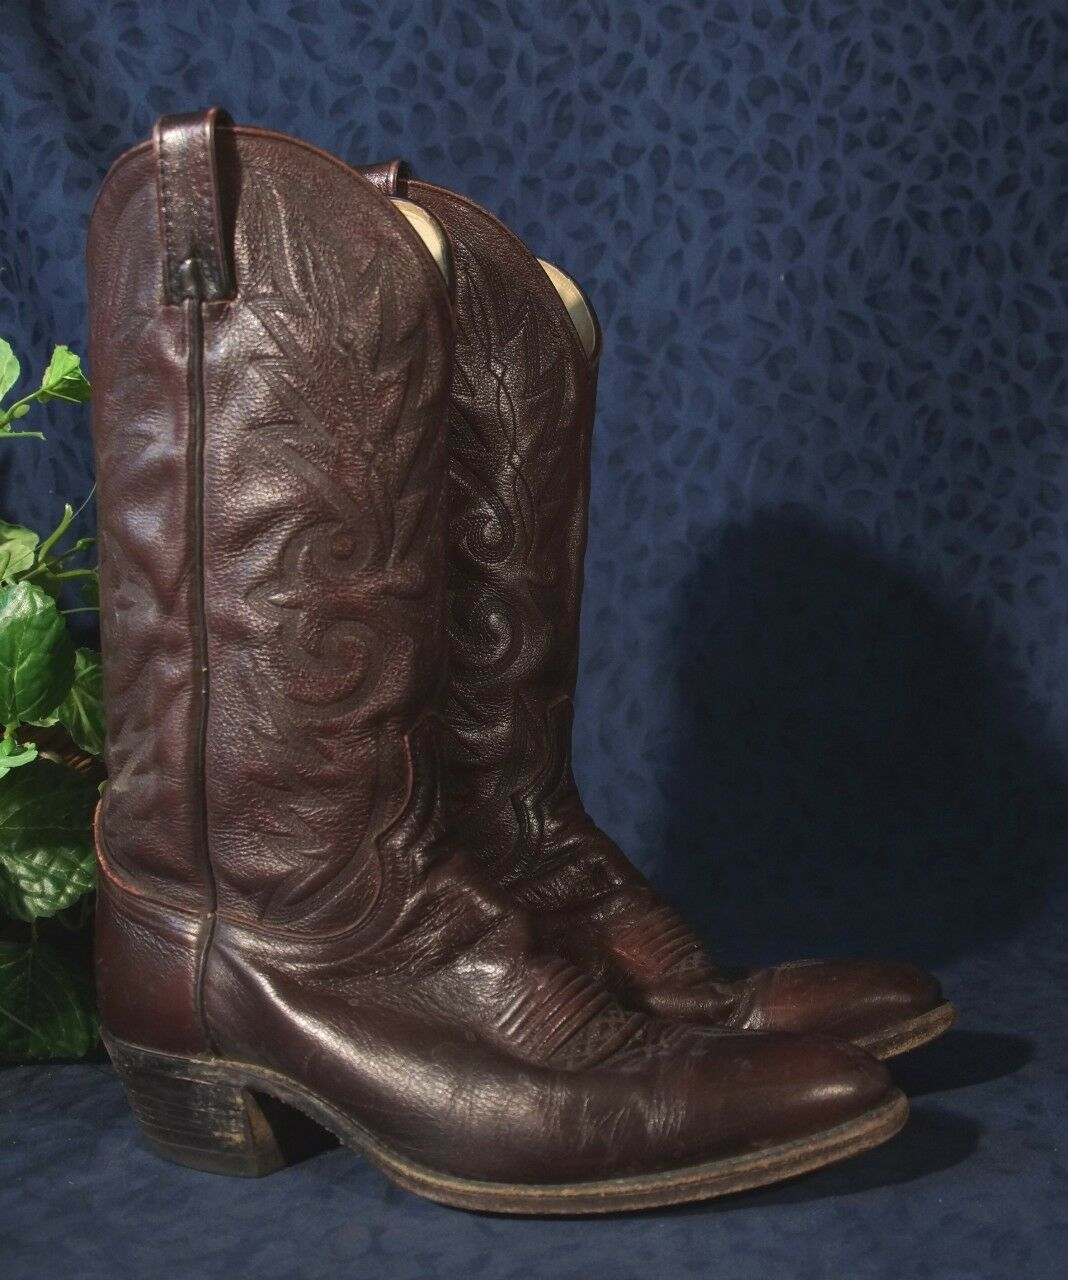 Handsome DAN POST Burgundy or Black Cherry Leather Cowboy Western Boots Sz 10B